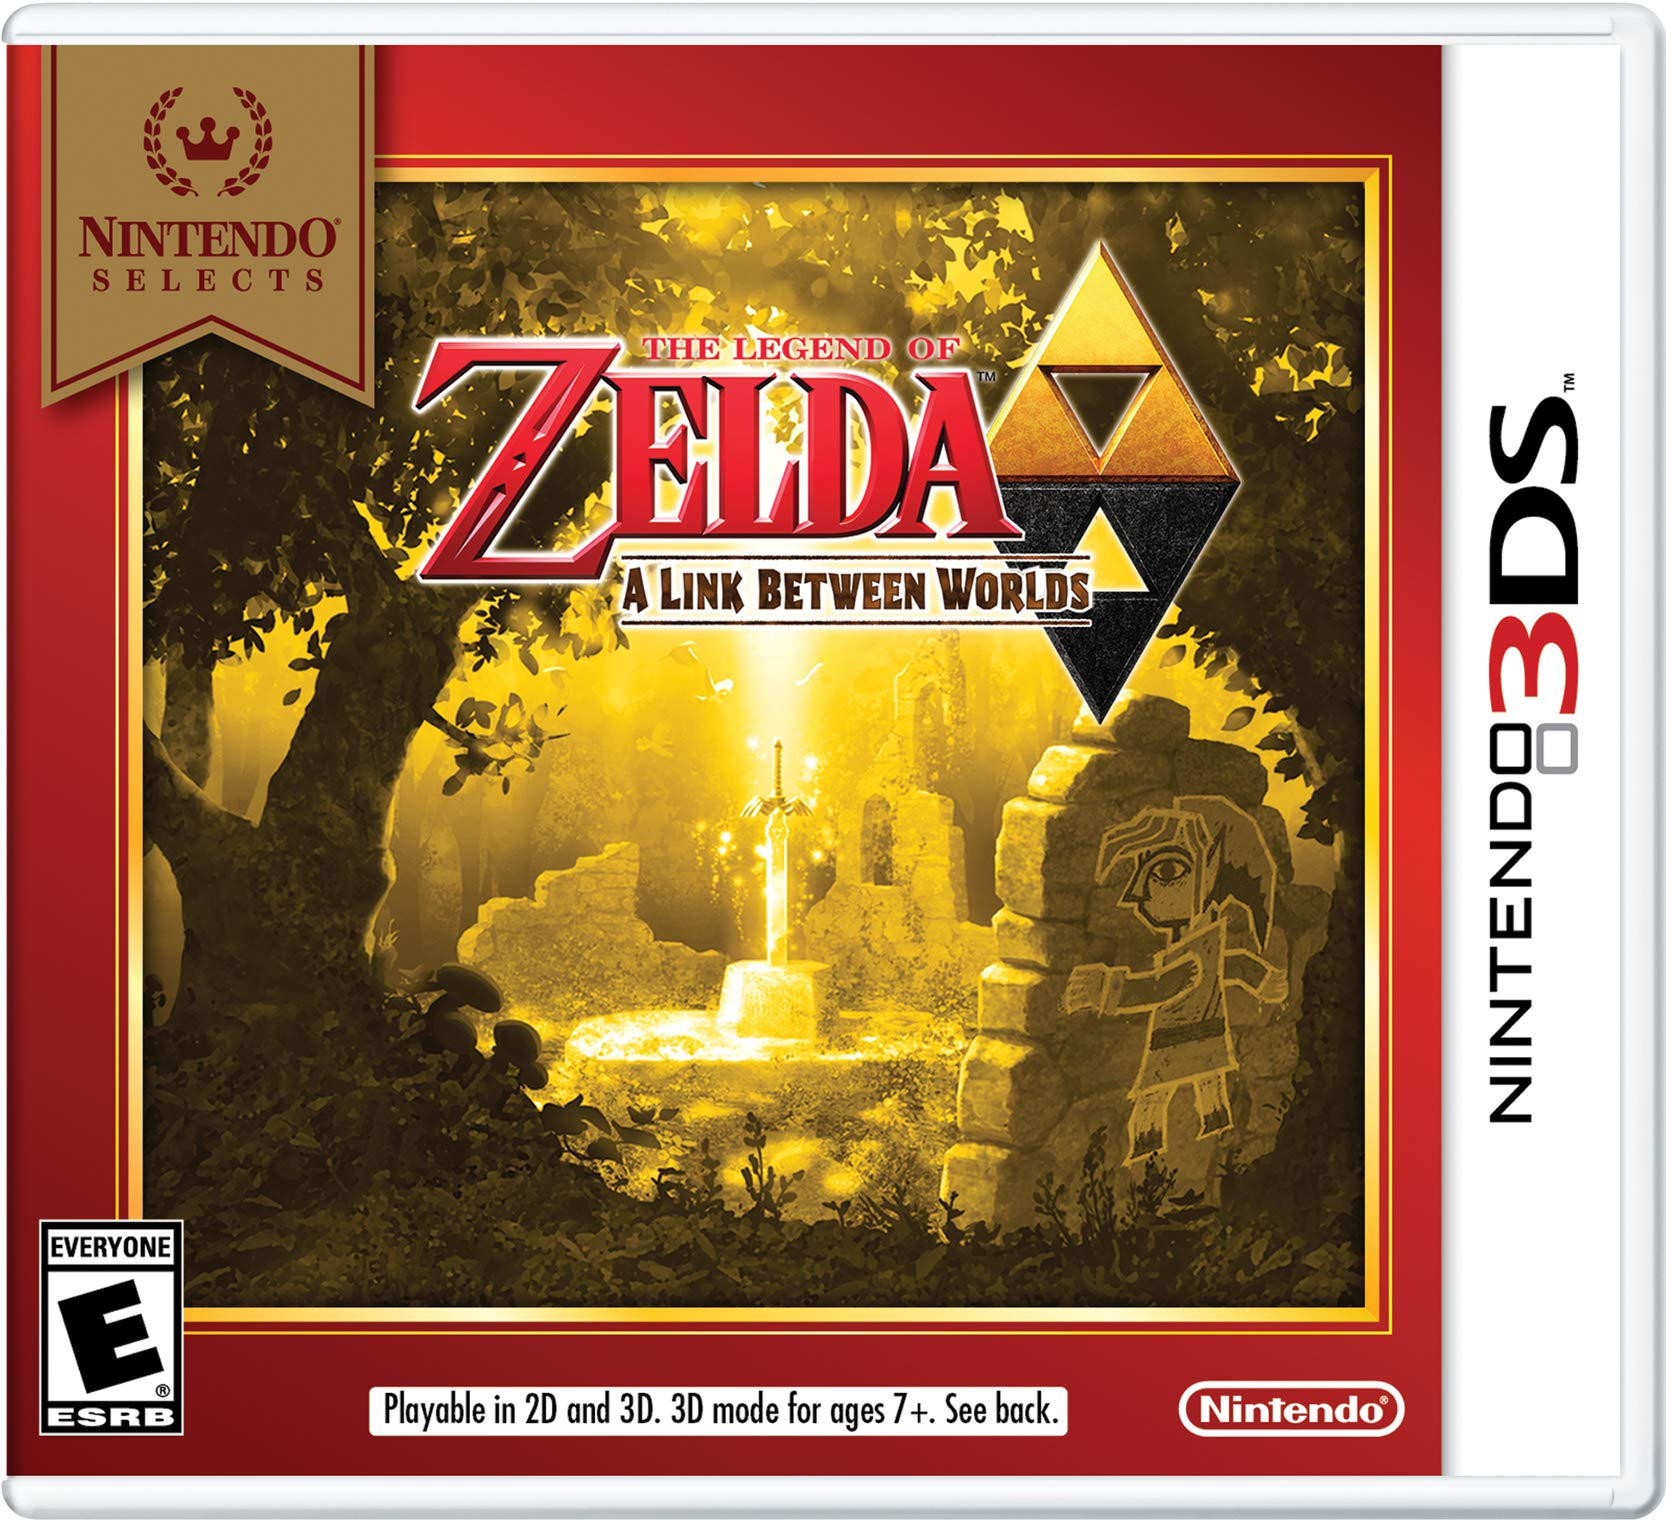 Amazon com: Nintendo Selects: The Legend of Zelda: A Link